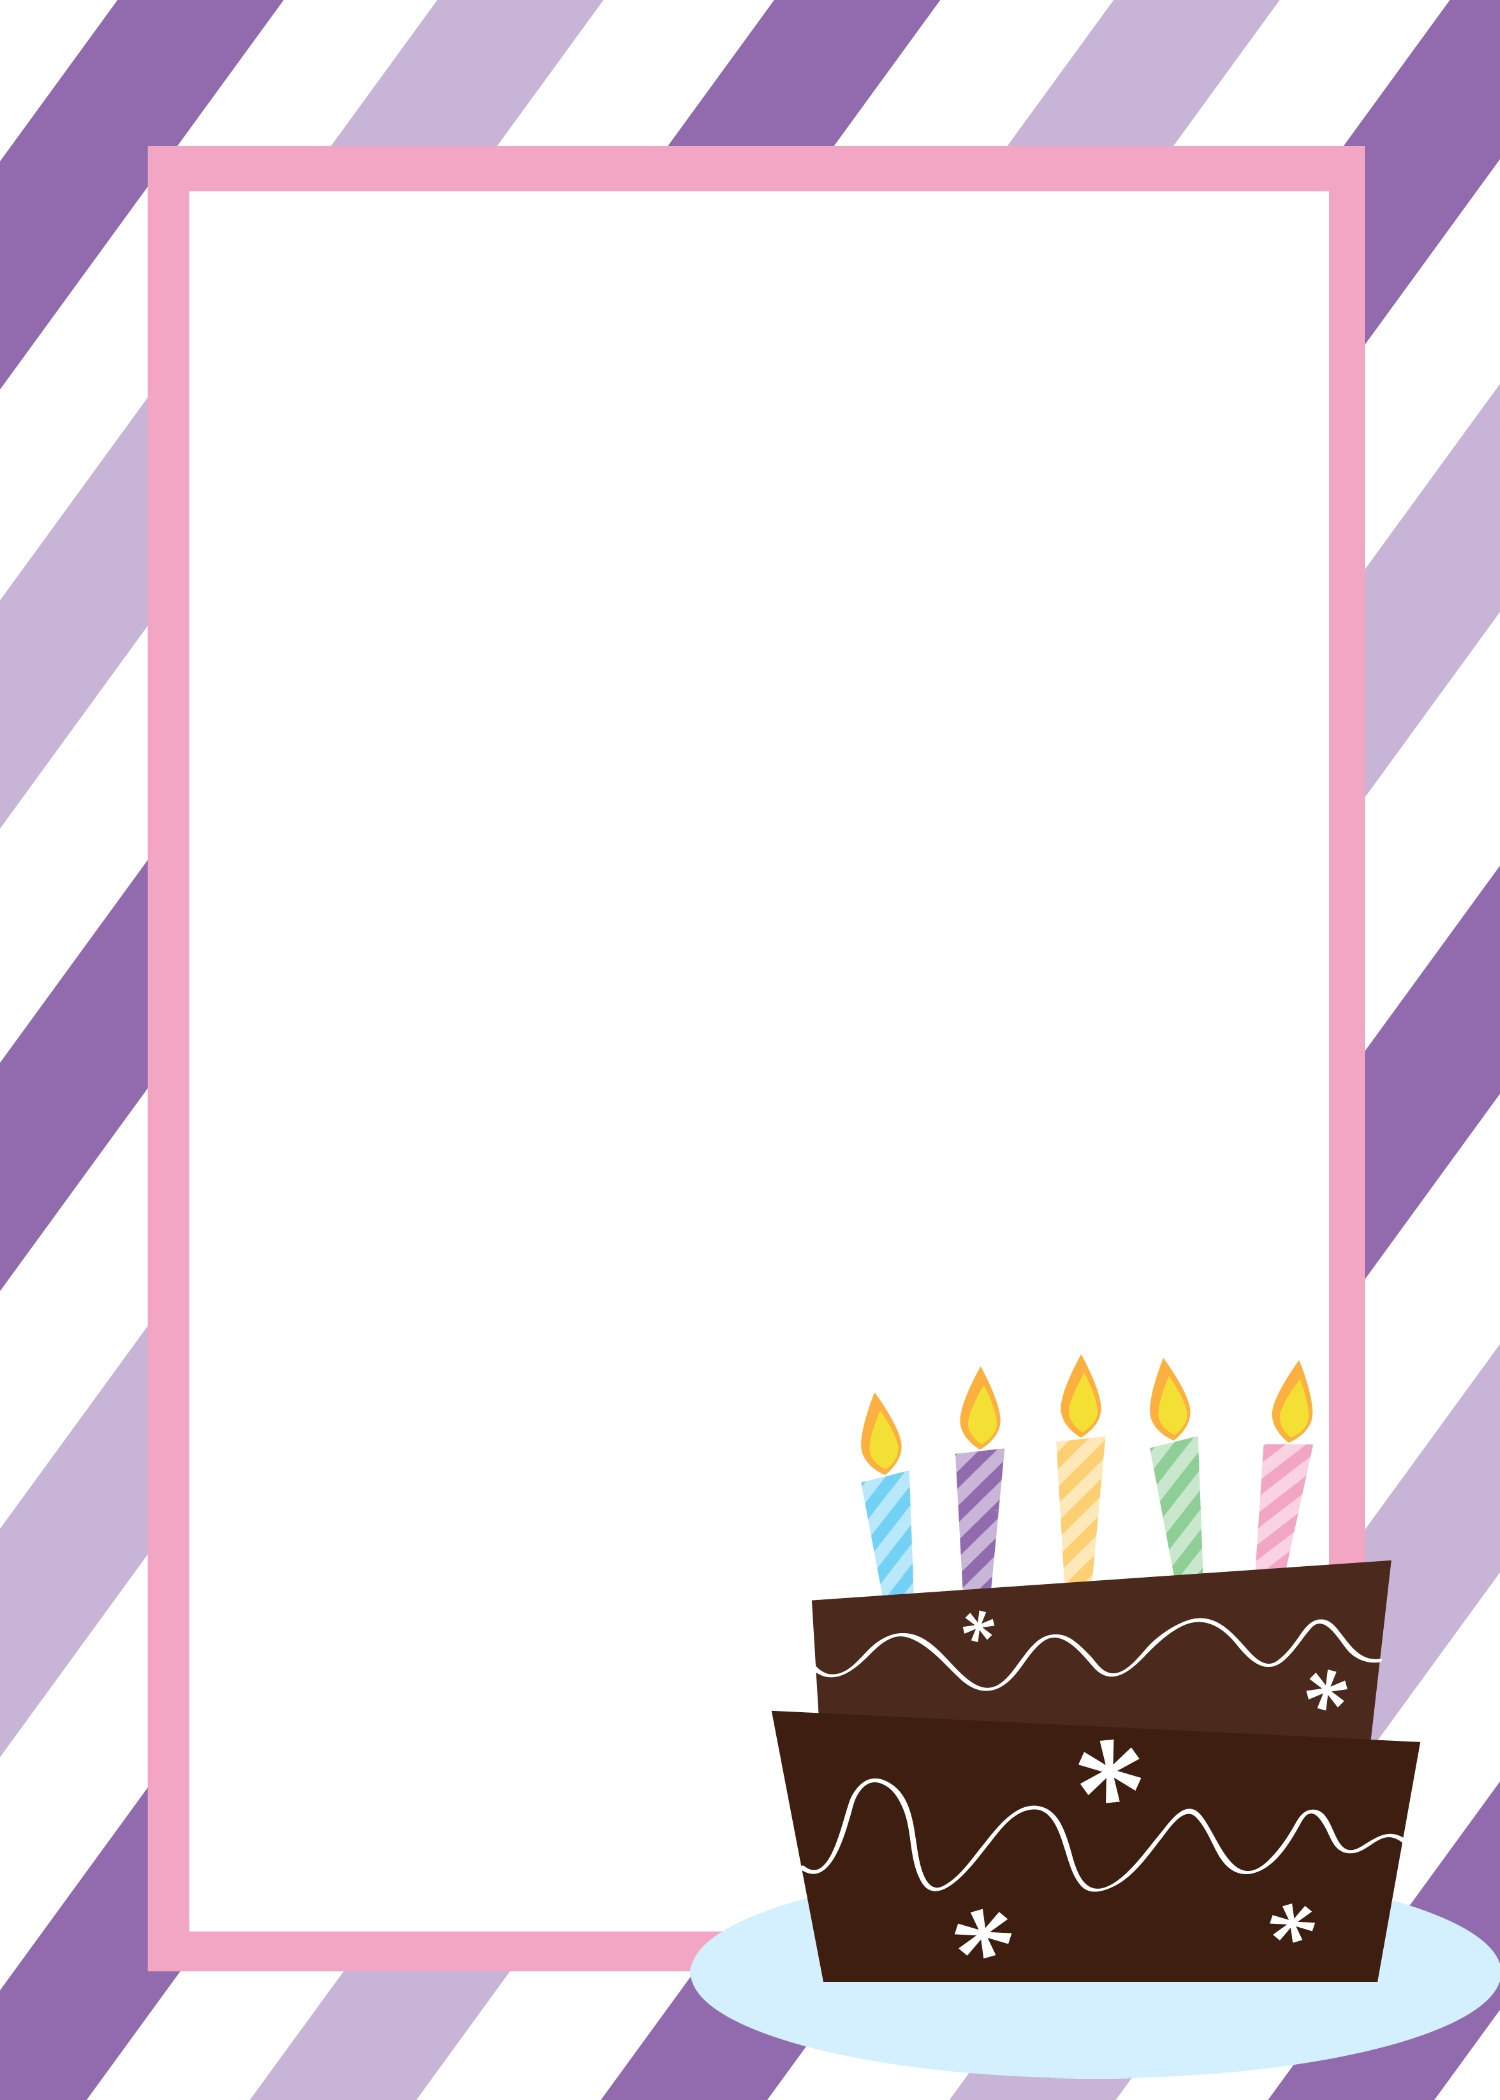 free printable birthday invitation templates for word ; 60Th-Birthday-Party-Invitations-Free-Templates-is-one-of-the-best-idea-for-you-to-make-your-own-birthday-Invitation-design-1